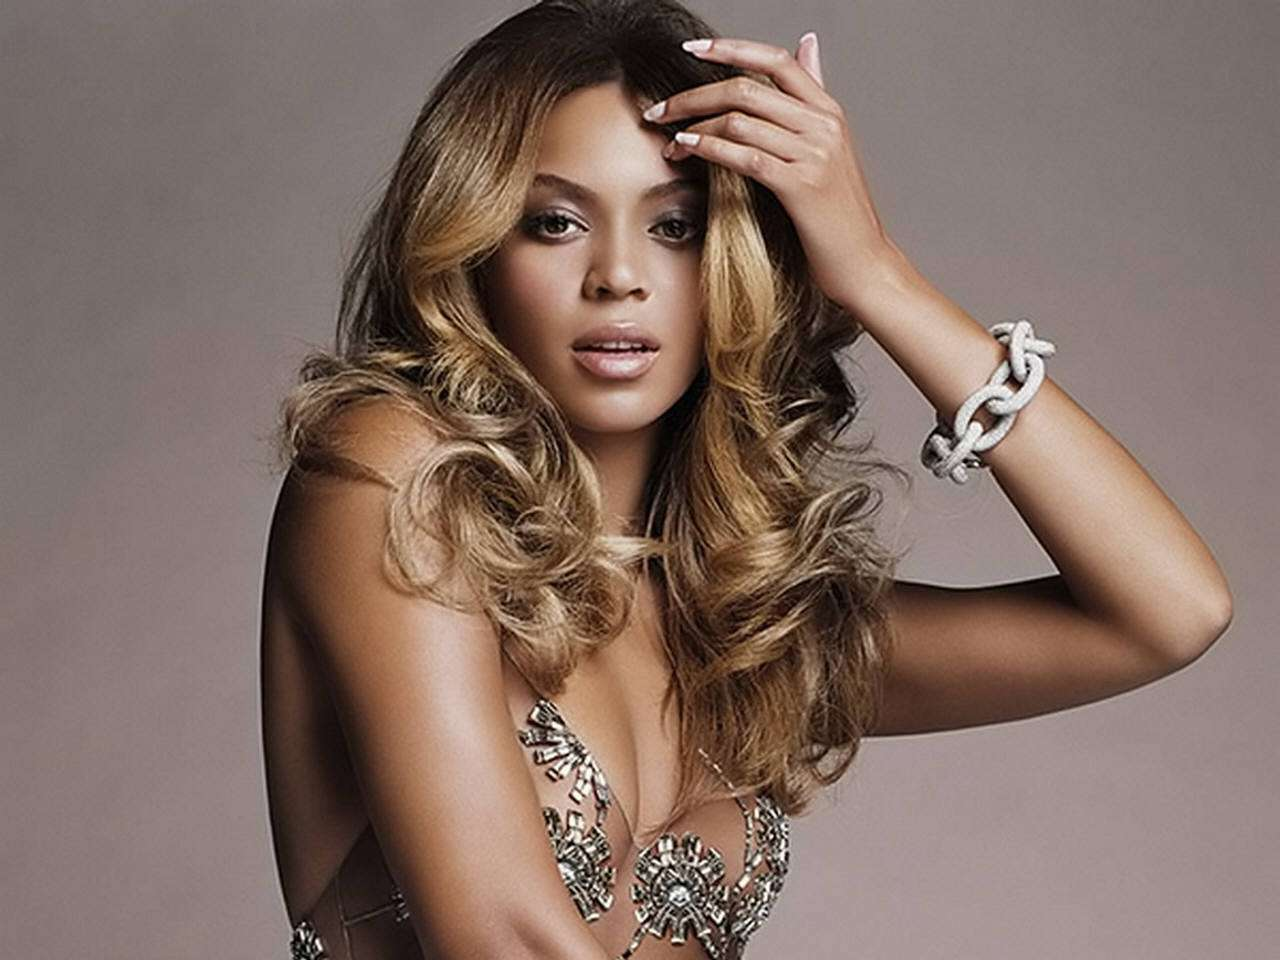 beyoncé knowles date of birth 09 04 1981 born in houston texas united ...